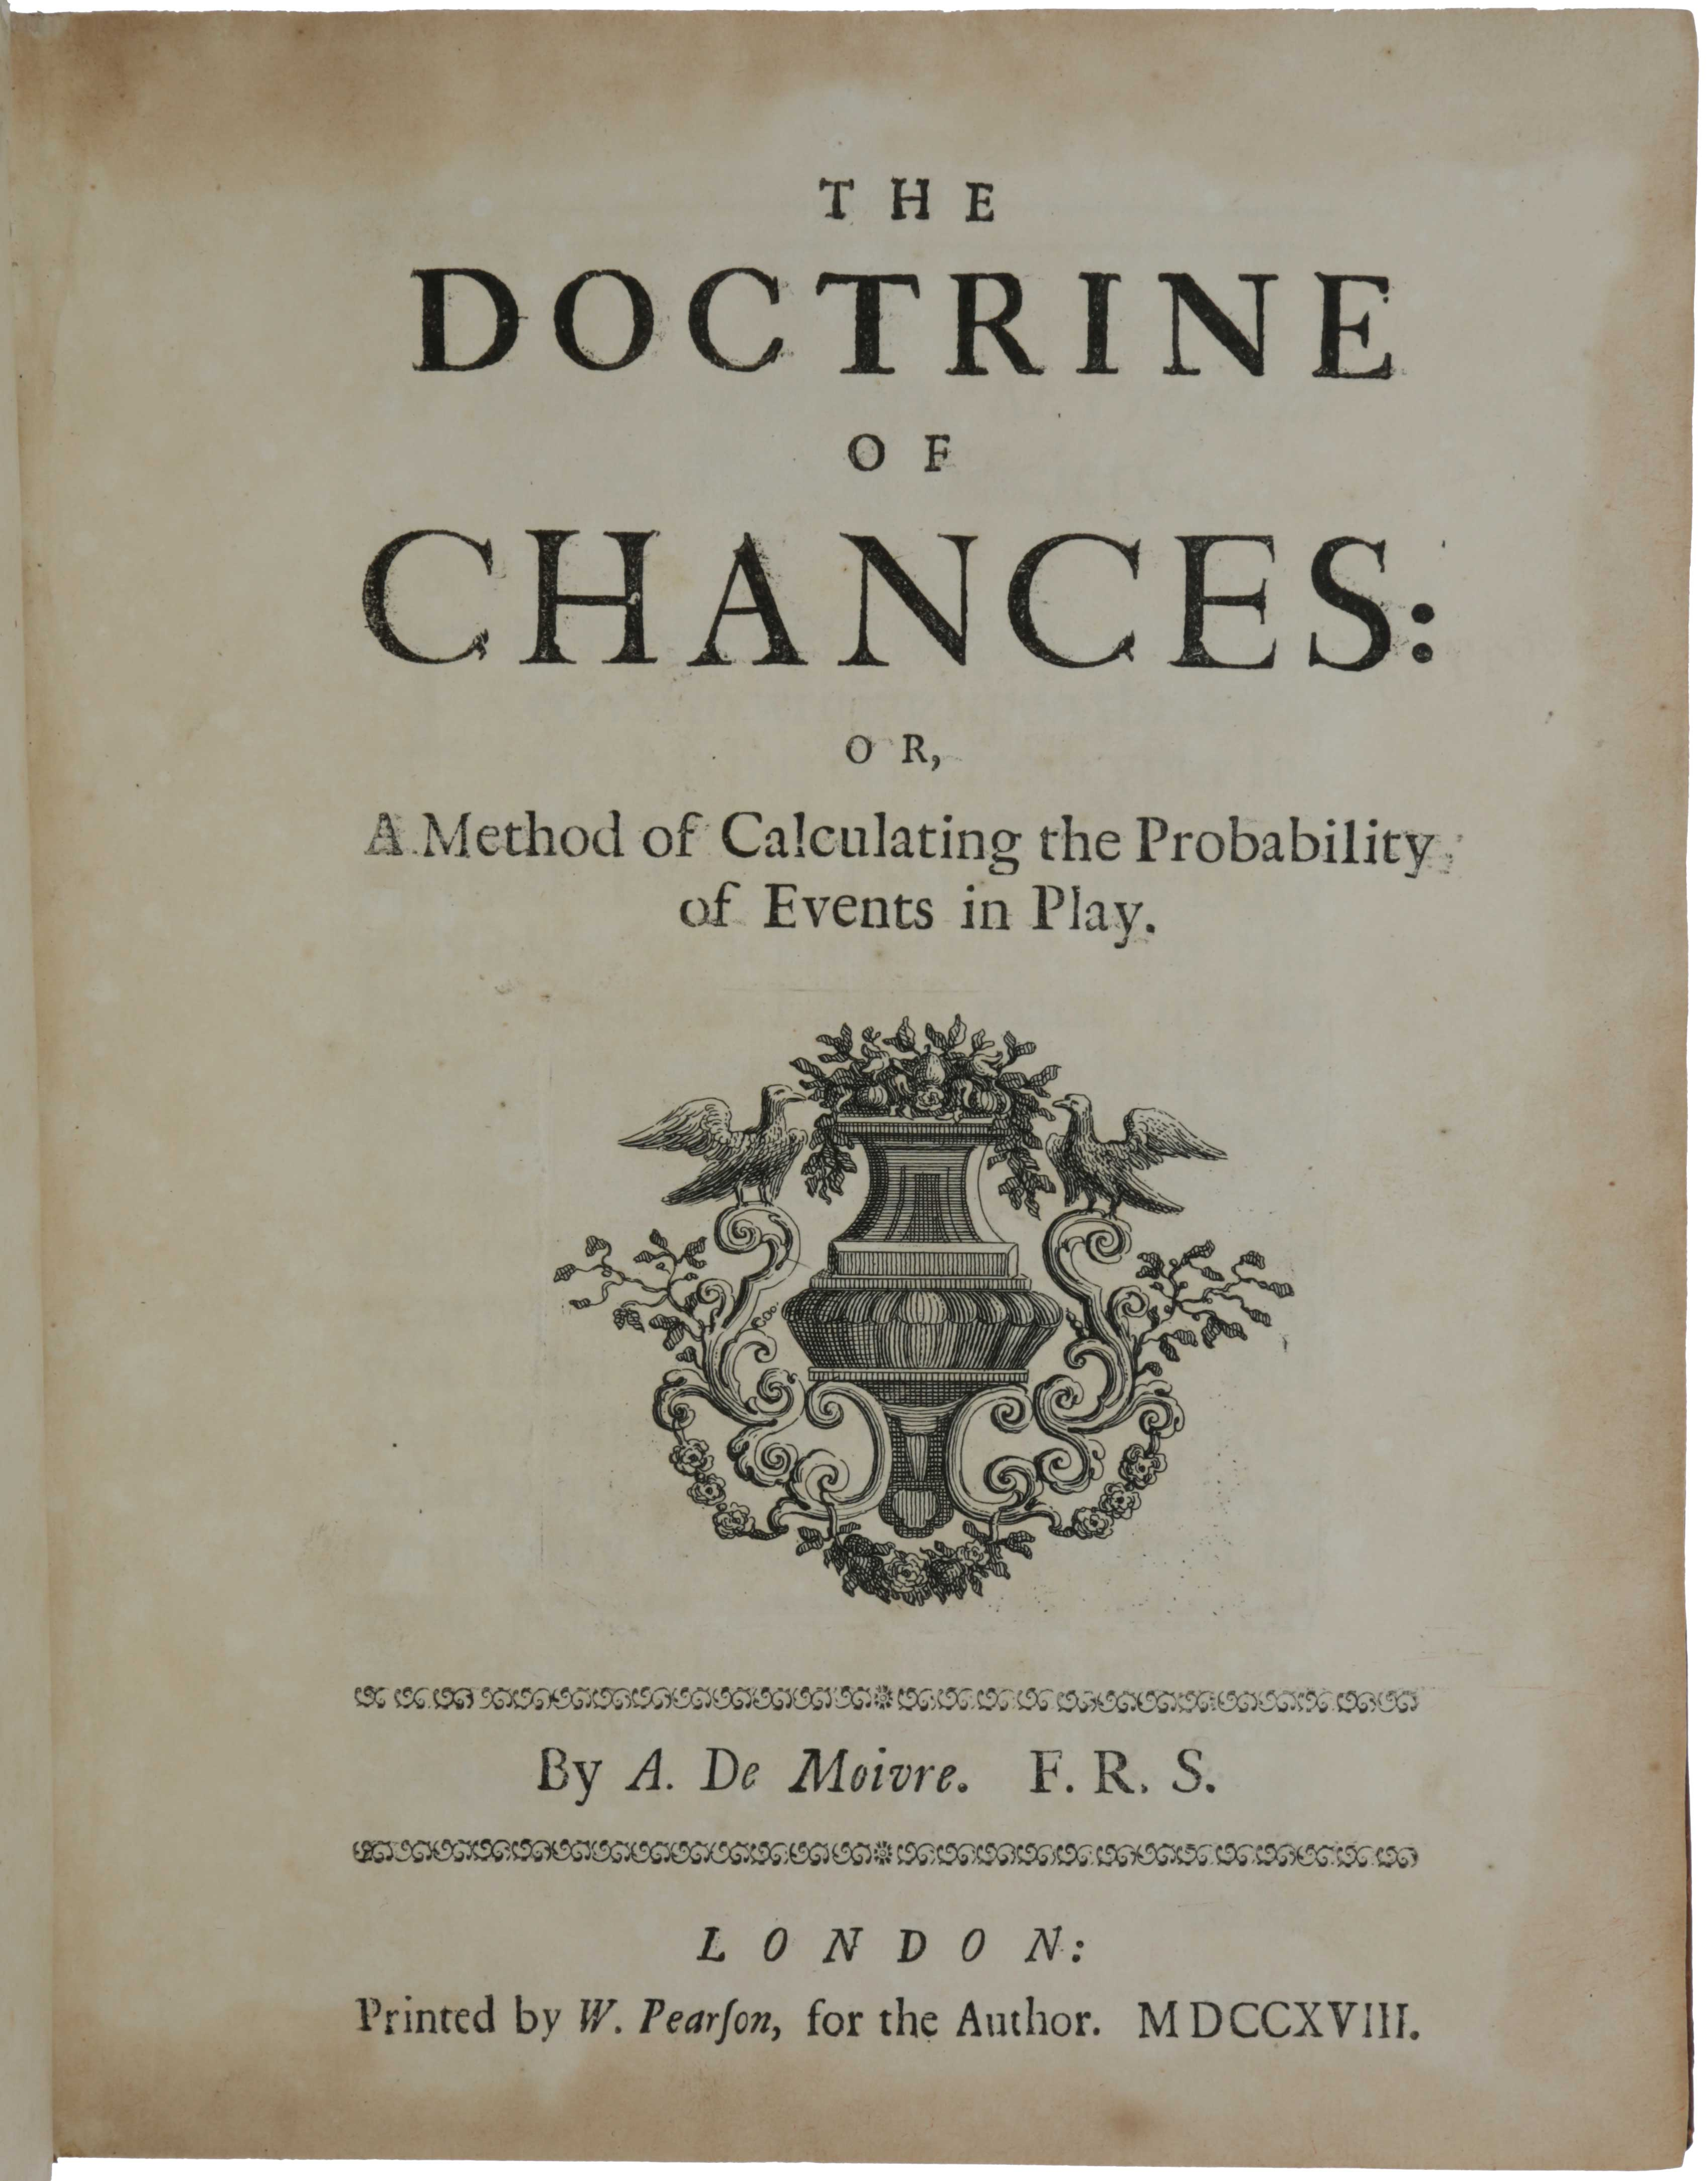 The Doctrine of Chances: or, A Method of Calculating the Probability of Events in Play. Abraham de MOIVRE.